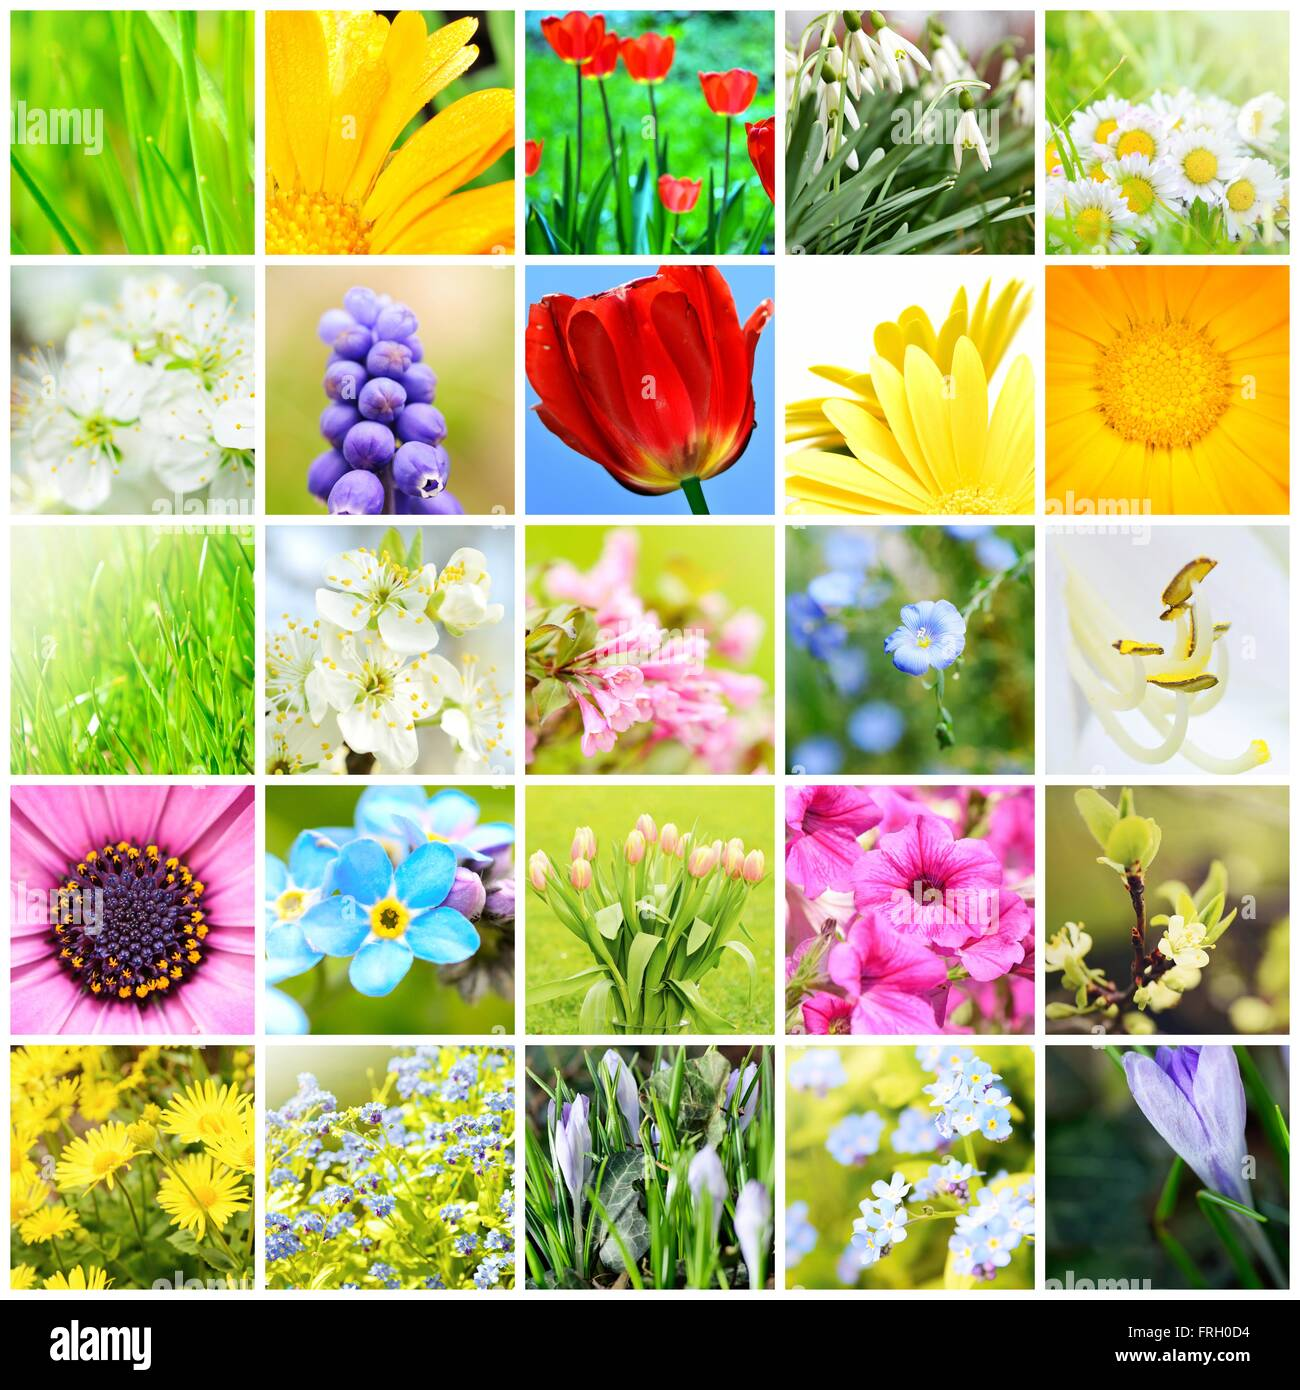 Spring natural abstract collage with plants and flowers in garden a spring natural abstract collage with plants and flowers in garden a spring collection background collage spring theme collage mightylinksfo Gallery